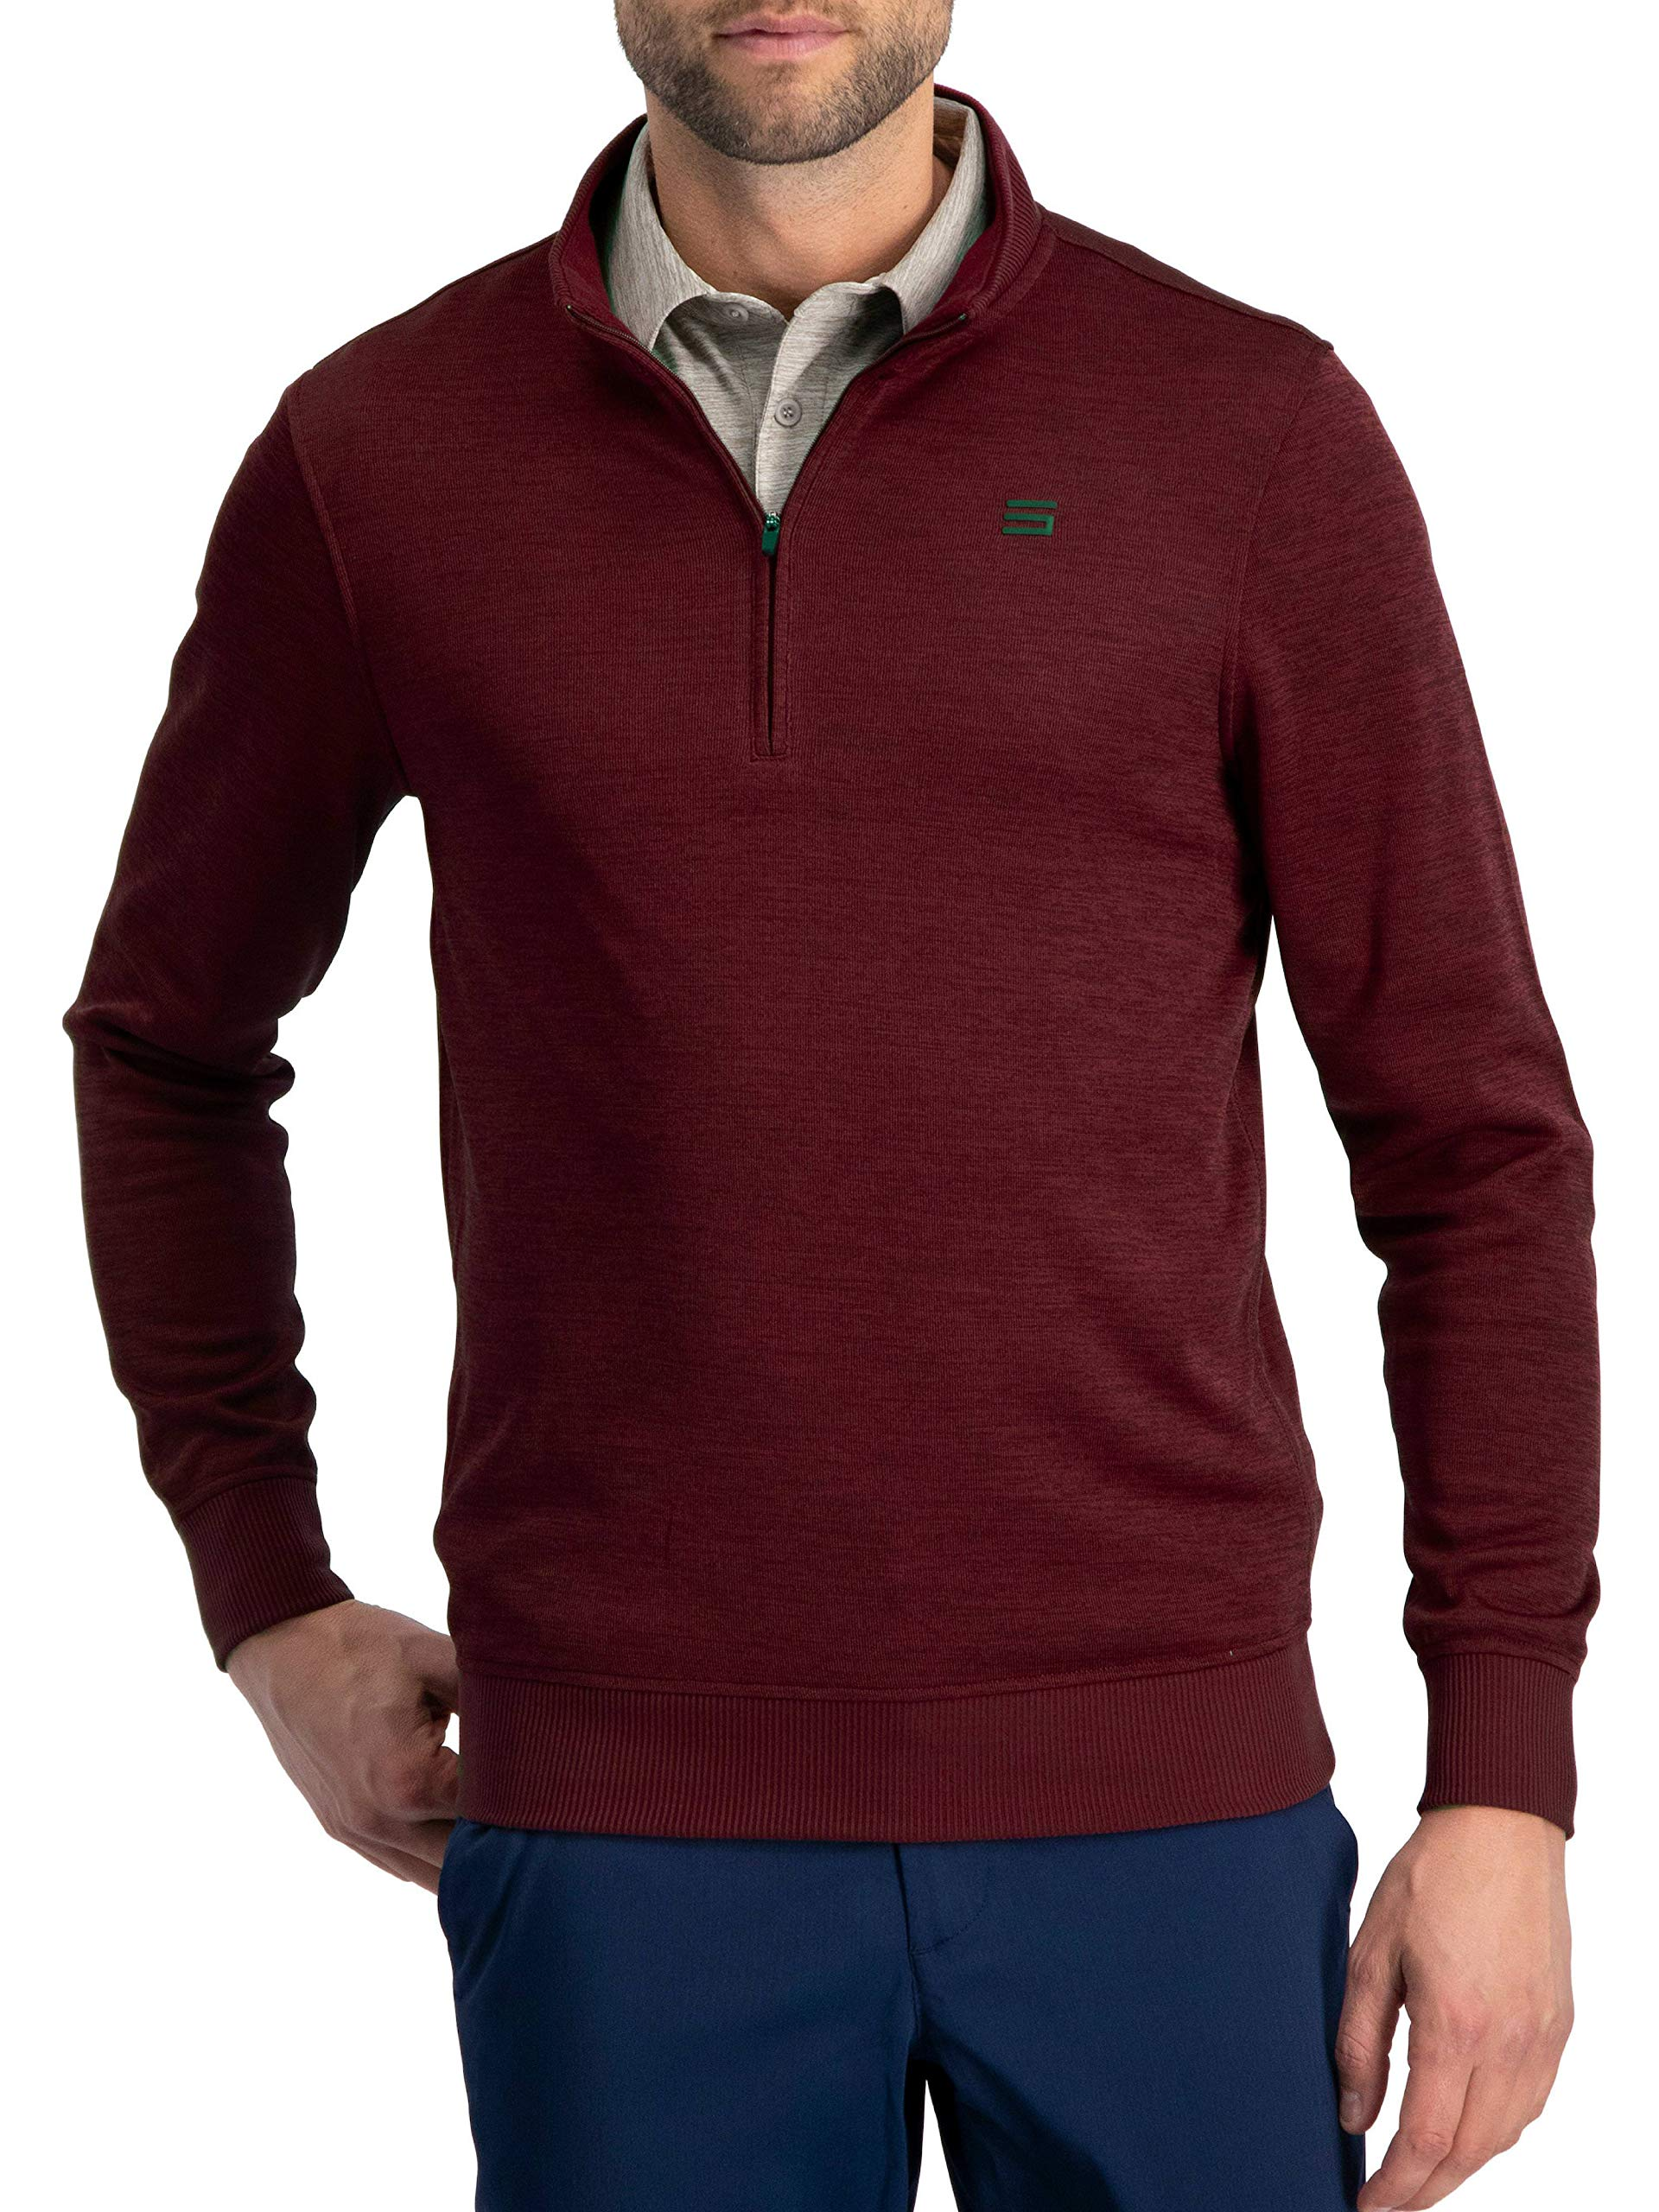 Dry Fit Pullover Sweaters for Men - Quarter Zip Fleece Golf Jacket - Tailored Fit Maroon by Three Sixty Six